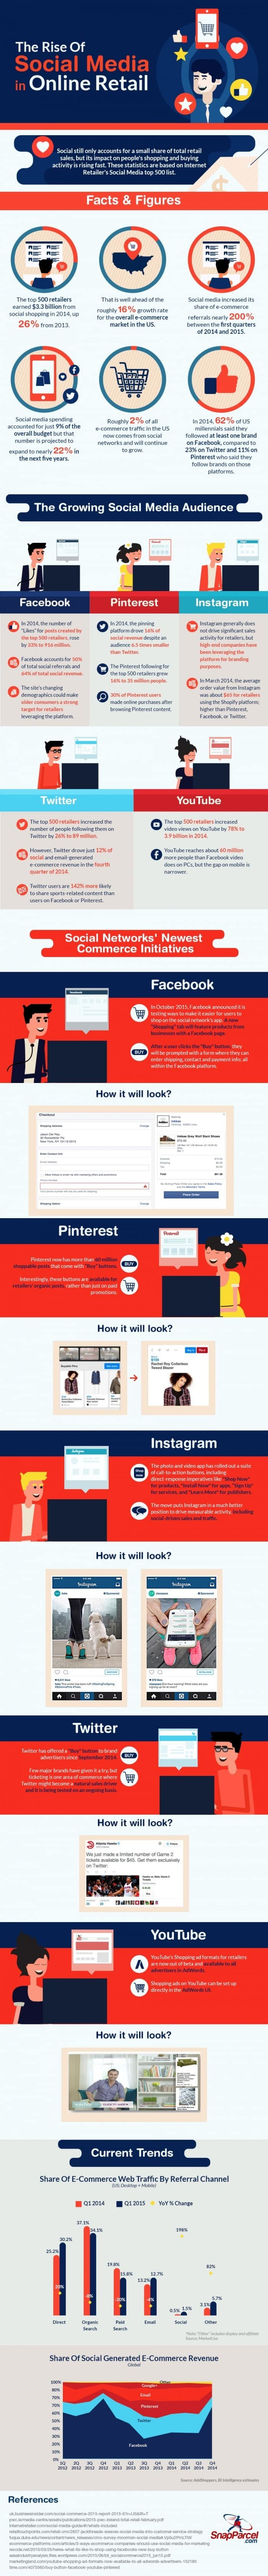 The-Rise-of-Social-Media-in-Online-Retail-infographic